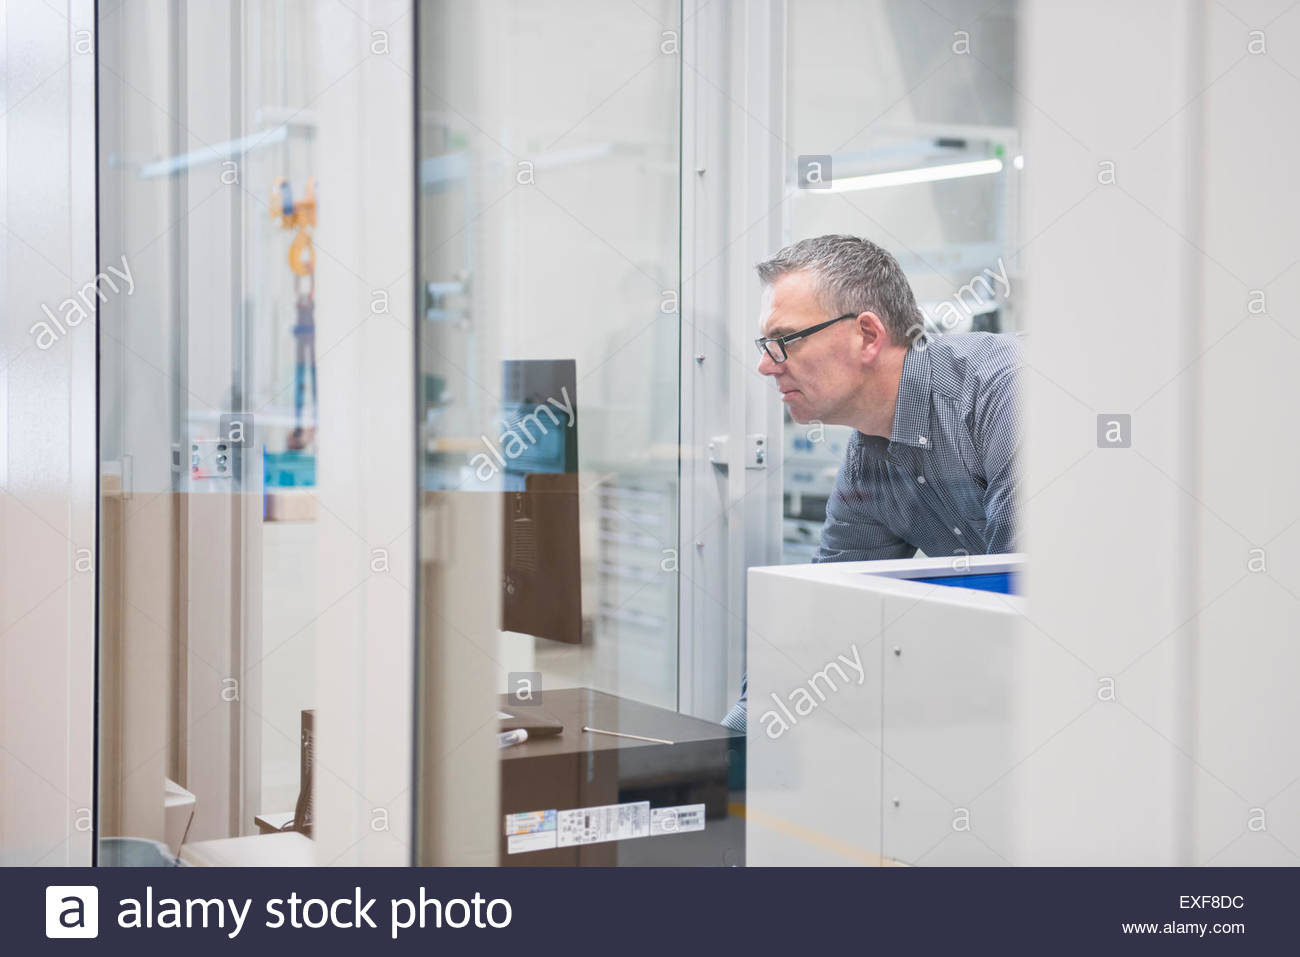 Factory worker monitoring computer screen in factory - Stock Image